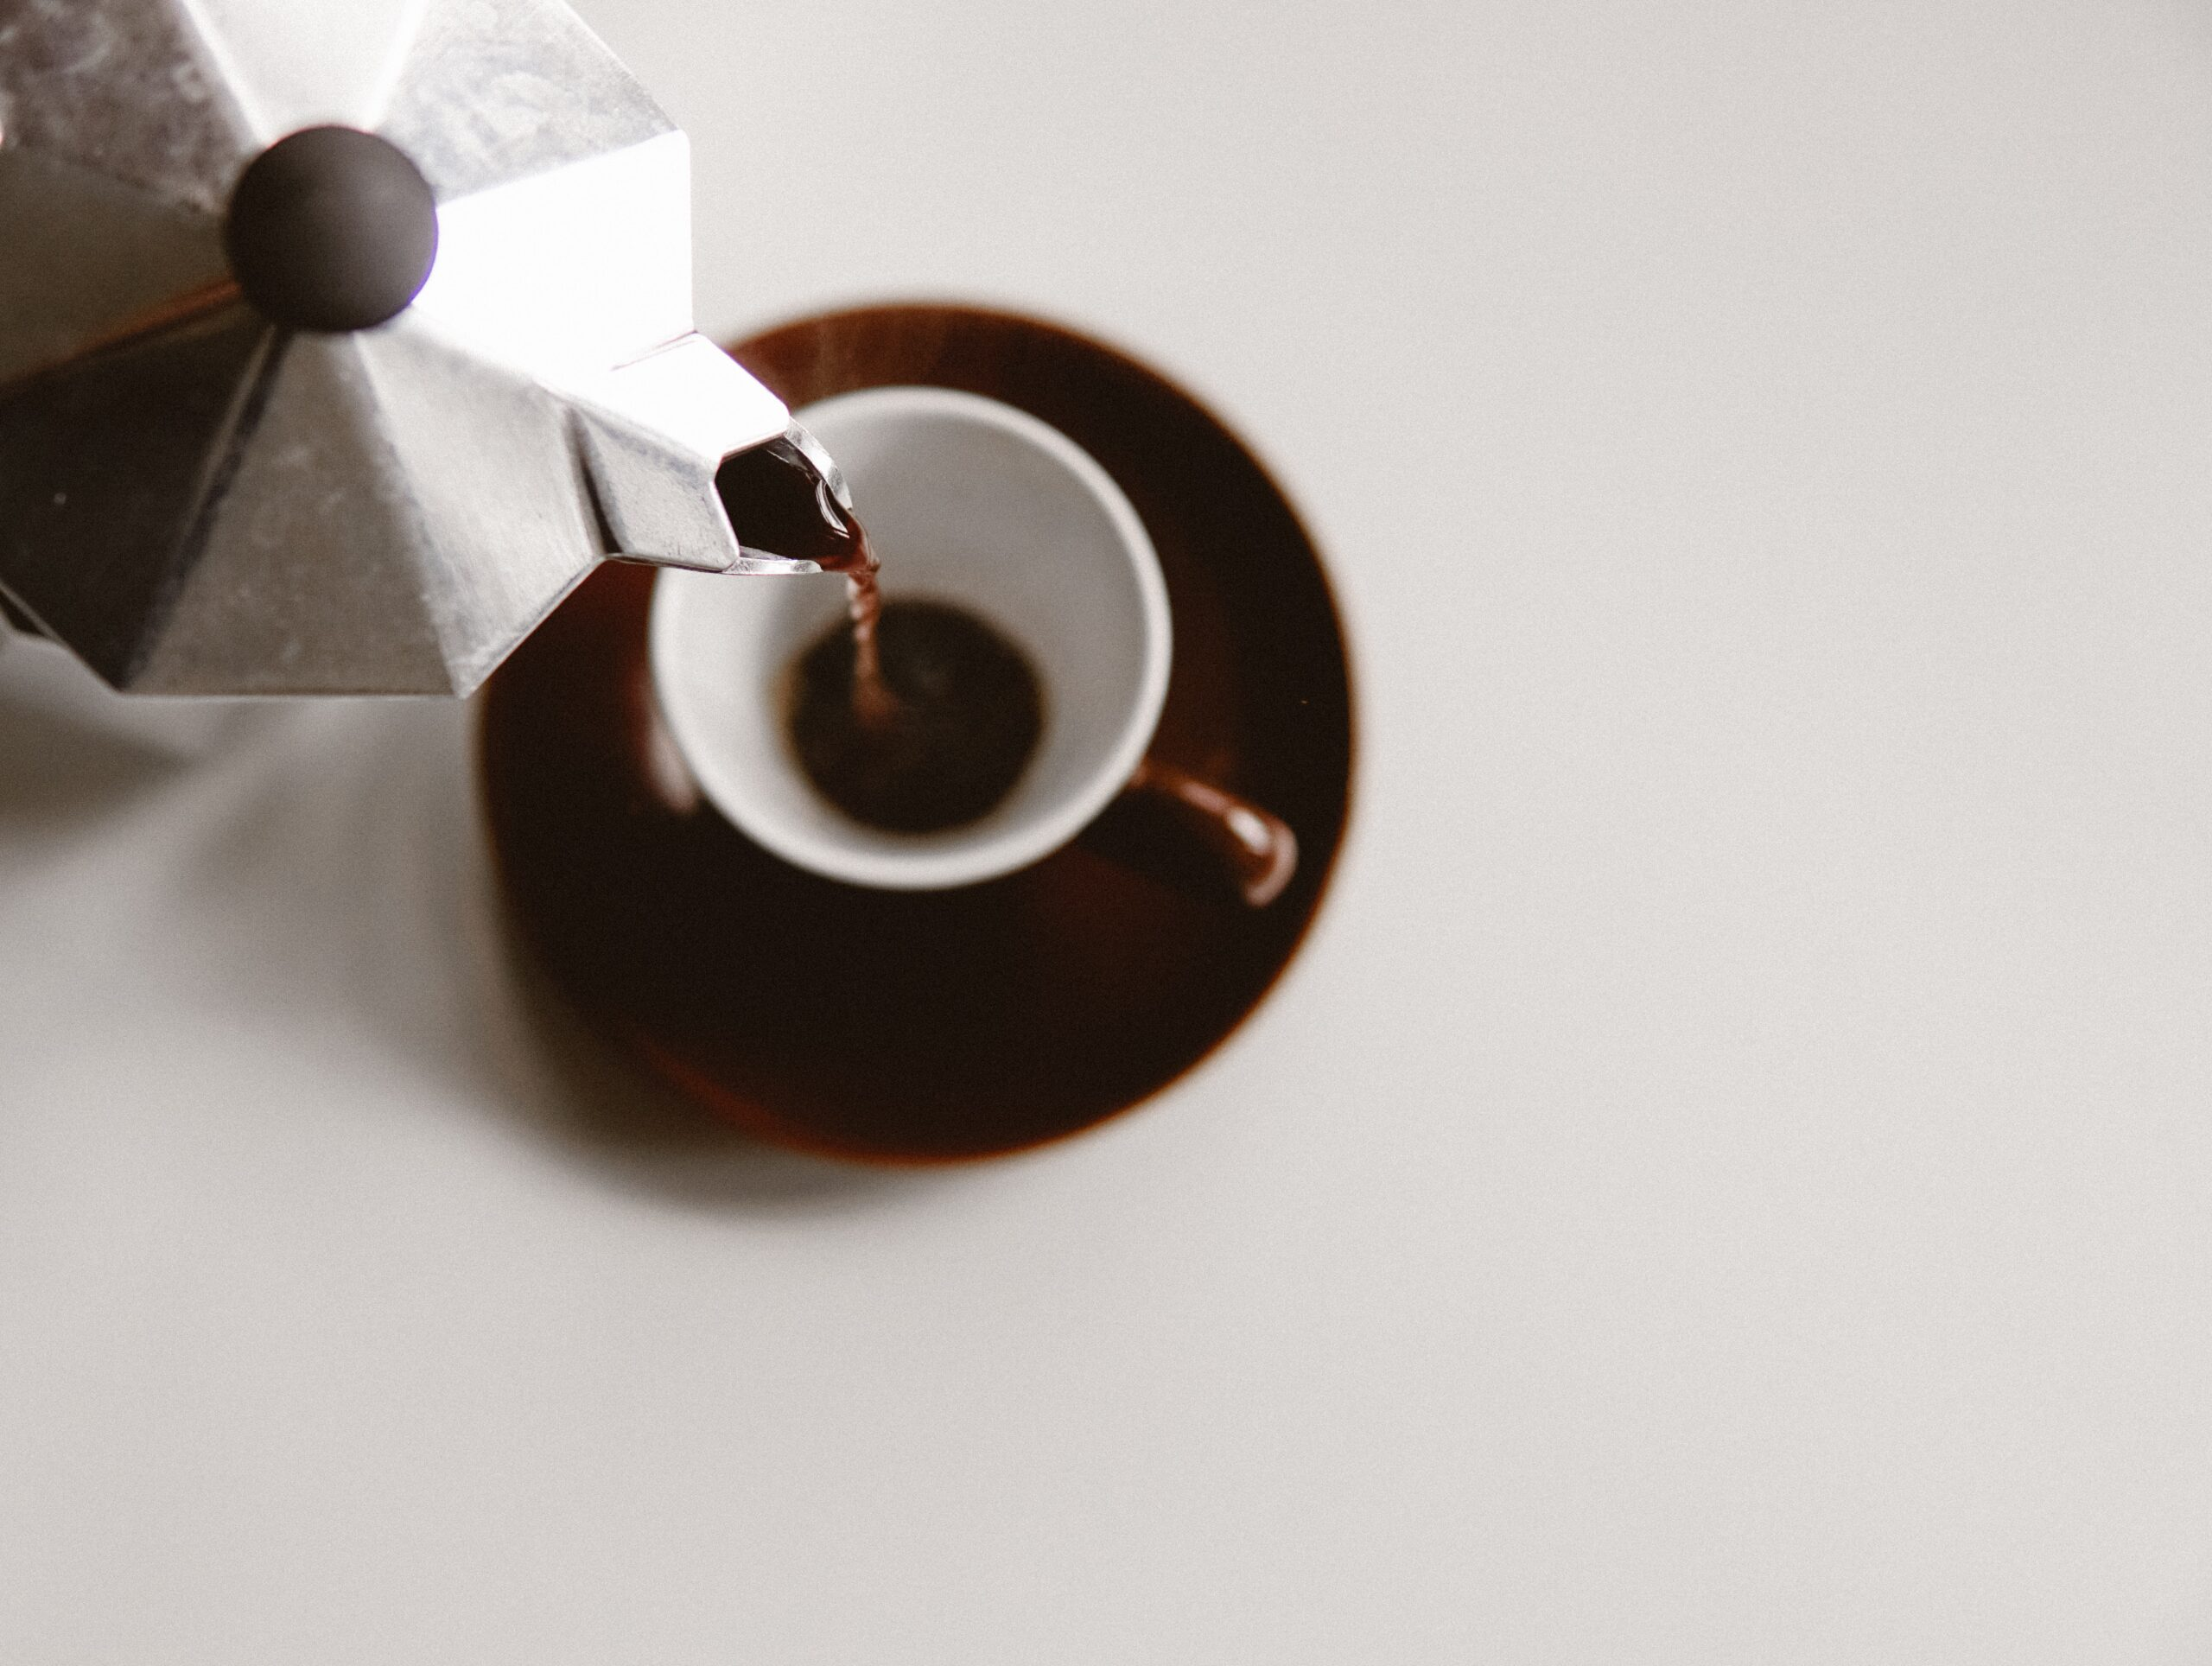 pouring coffee into a cup from a moka pot